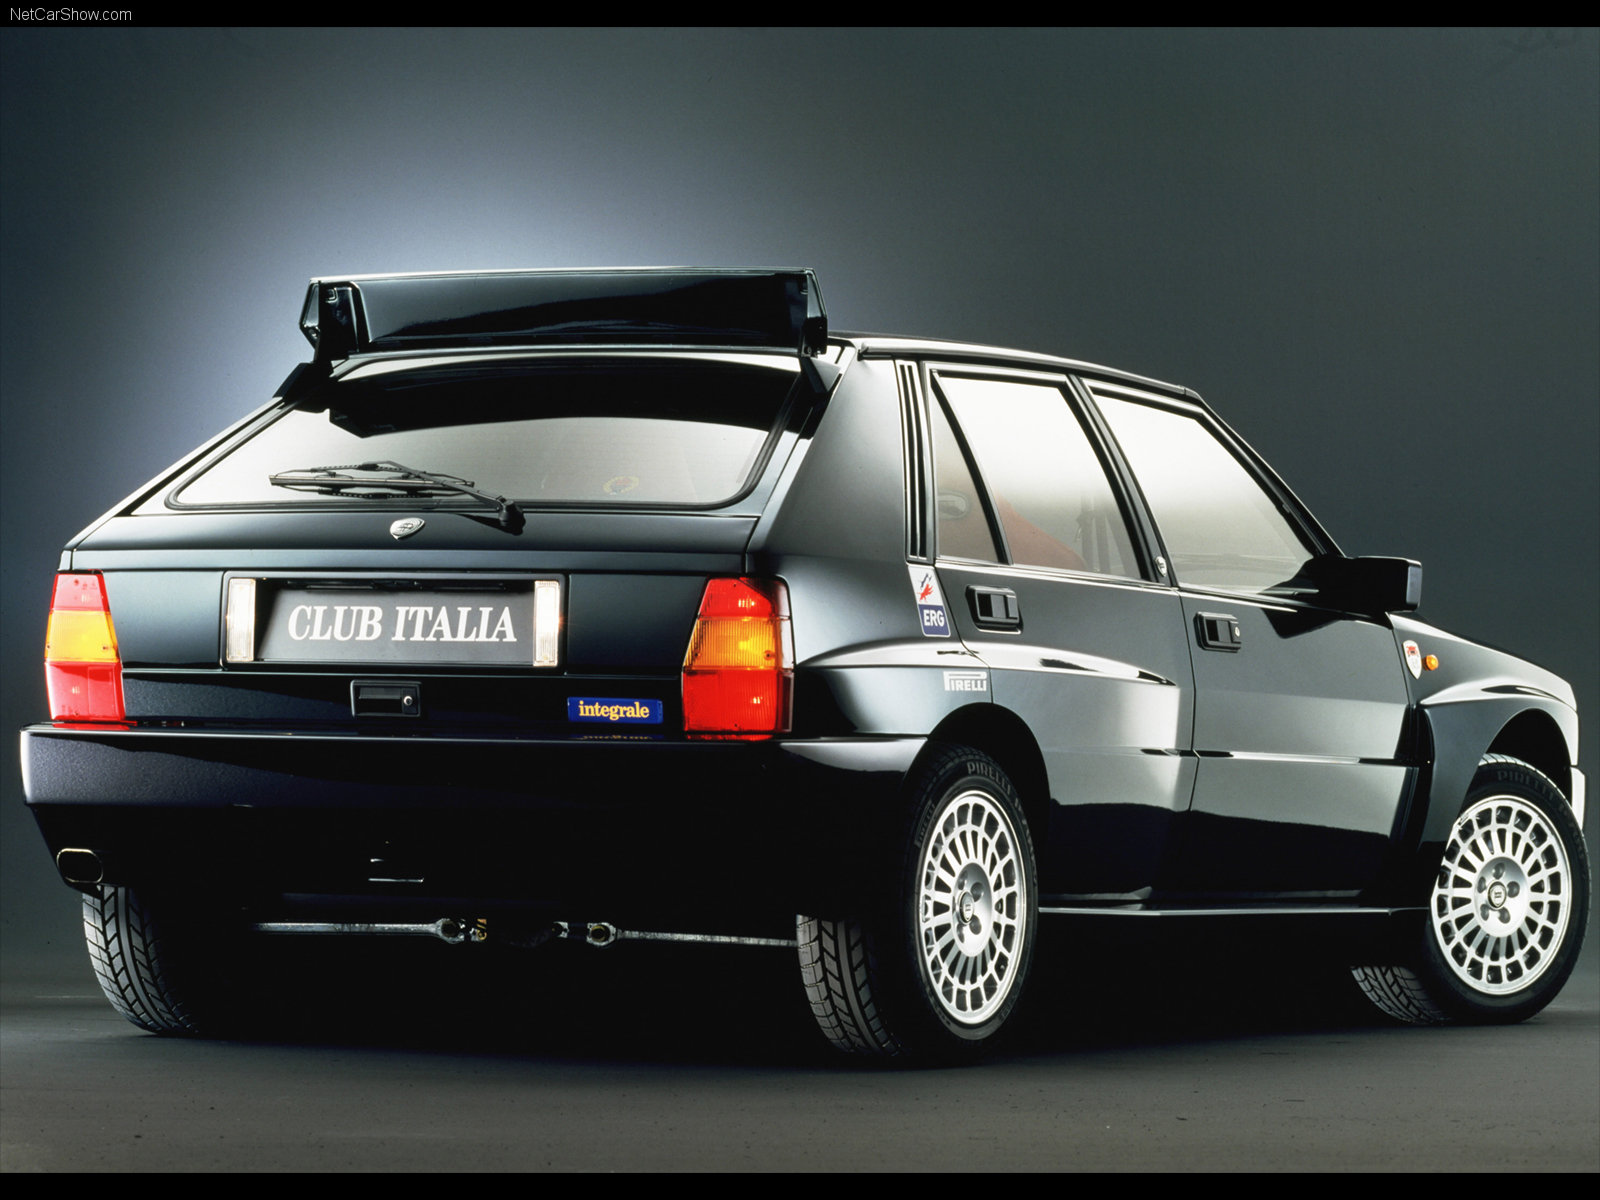 3dtuning of lancia delta evo 5 door hatchback 1992 unique on line car. Black Bedroom Furniture Sets. Home Design Ideas